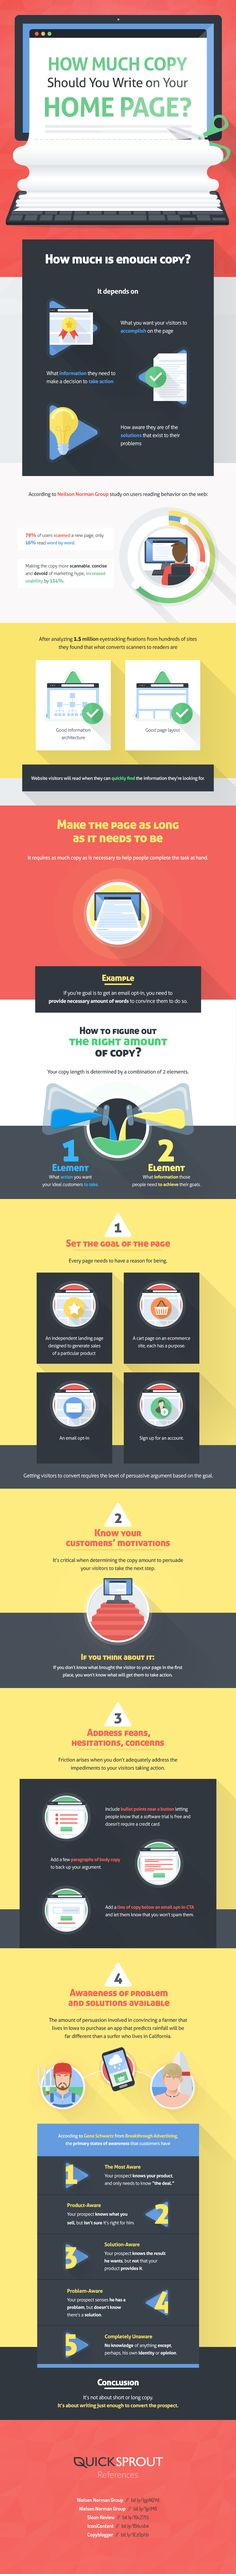 How Much Copy Should You Write on Your Home page? #infographic